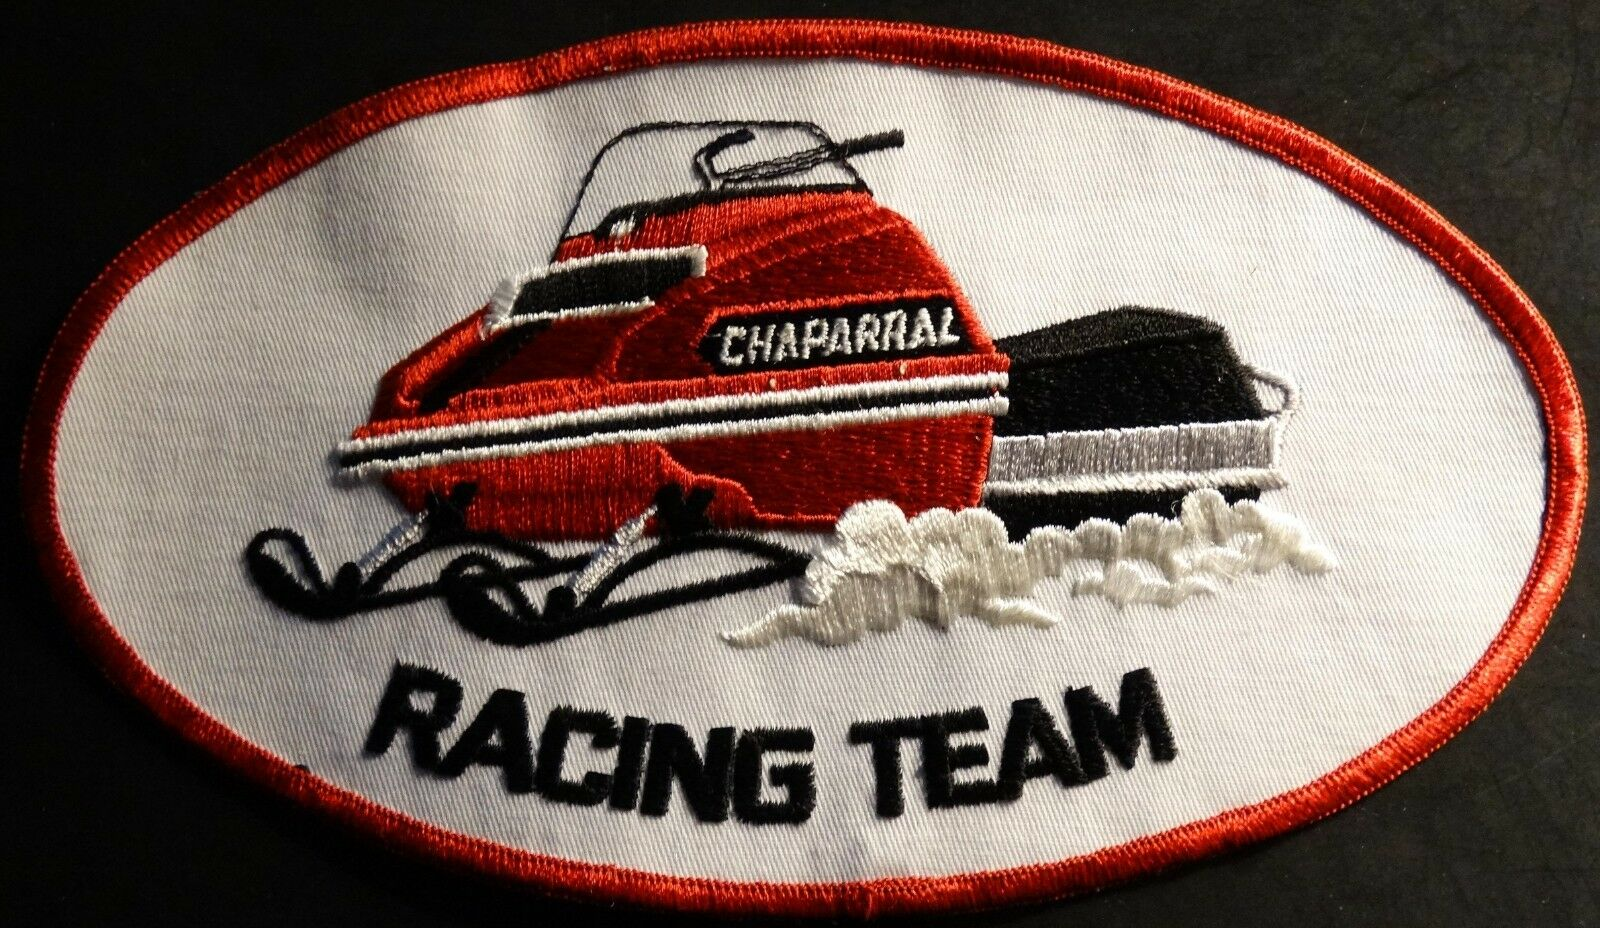 N.O.S. ORIGINAL CHAPARRAL VINTAGE SNOWMOBILE PATCH NEW  5  X 9  (937)  buy 100% authentic quality